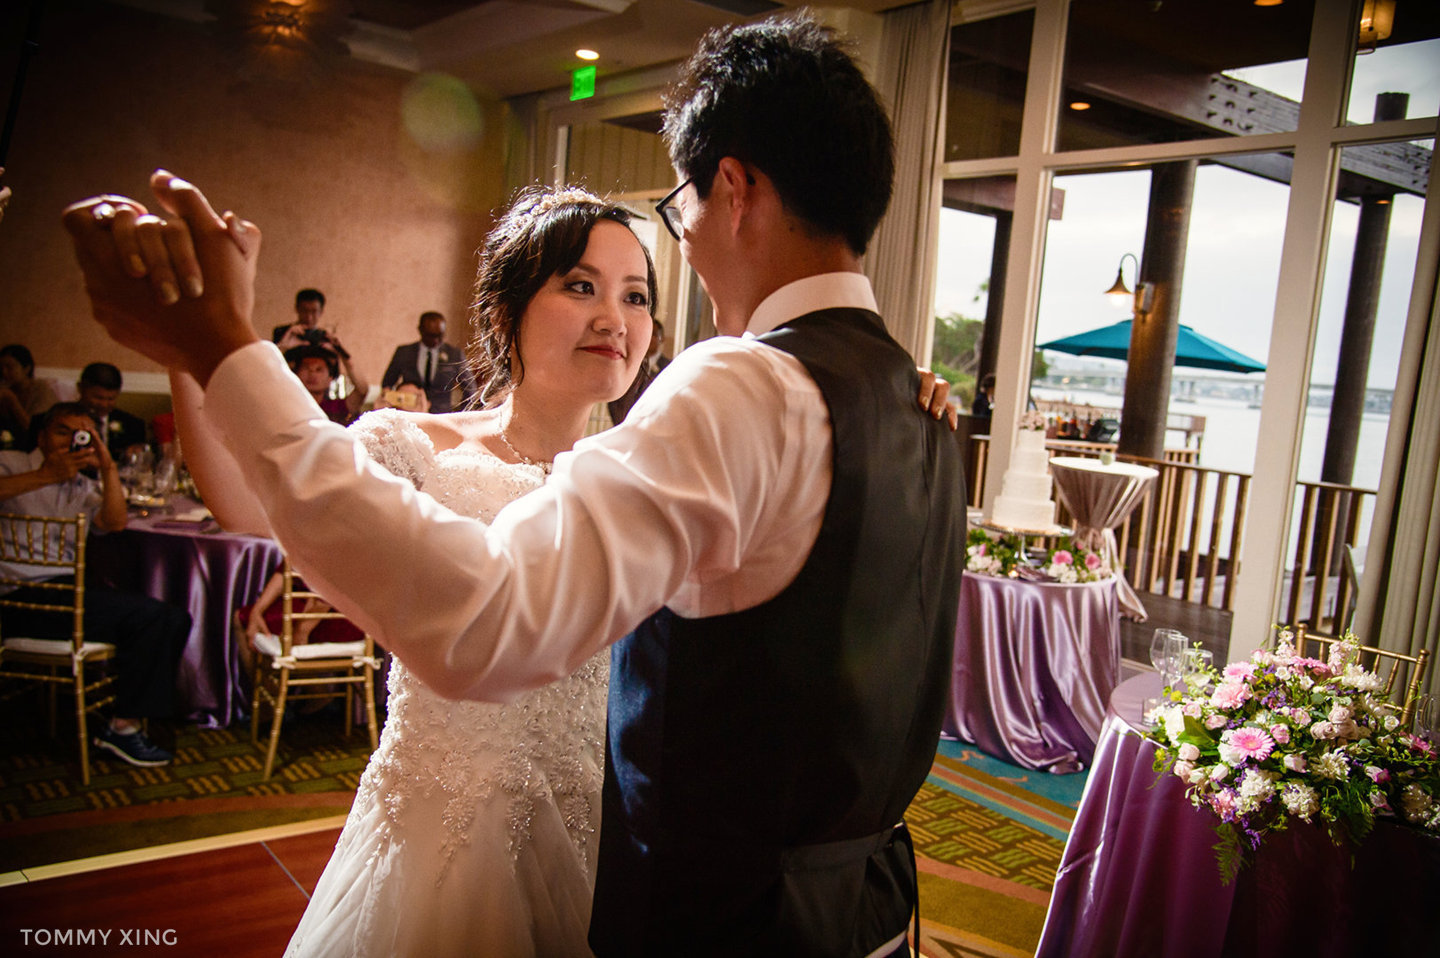 Paradise Point Resort Wedding Xiaolu & Bin San Diego 圣地亚哥婚礼摄影跟拍 Tommy Xing Photography 洛杉矶婚礼婚纱照摄影师 231.jpg